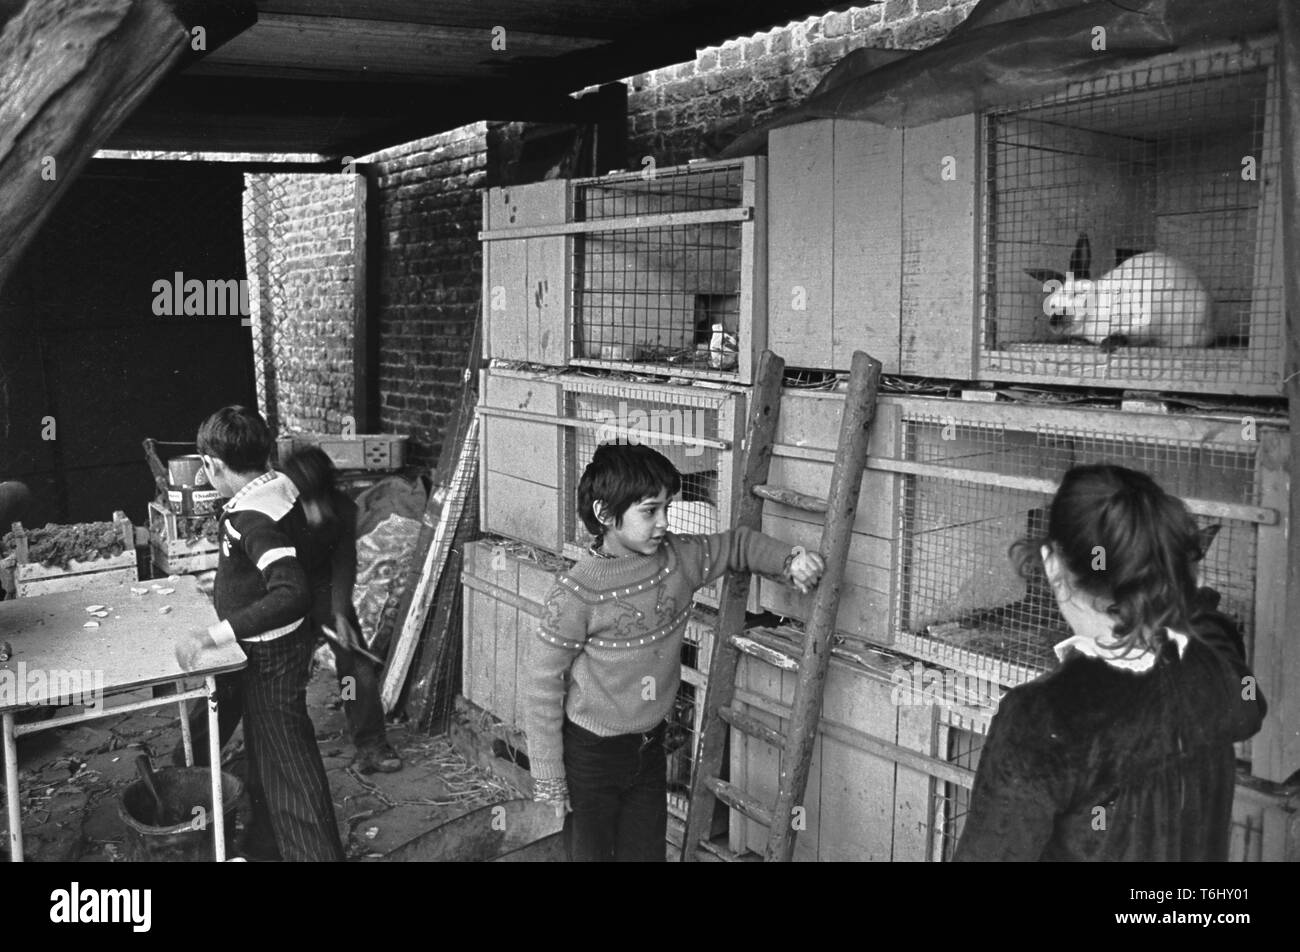 Spitalfields City Farm London E1, children caring for rabbits, 1978 - Stock Image